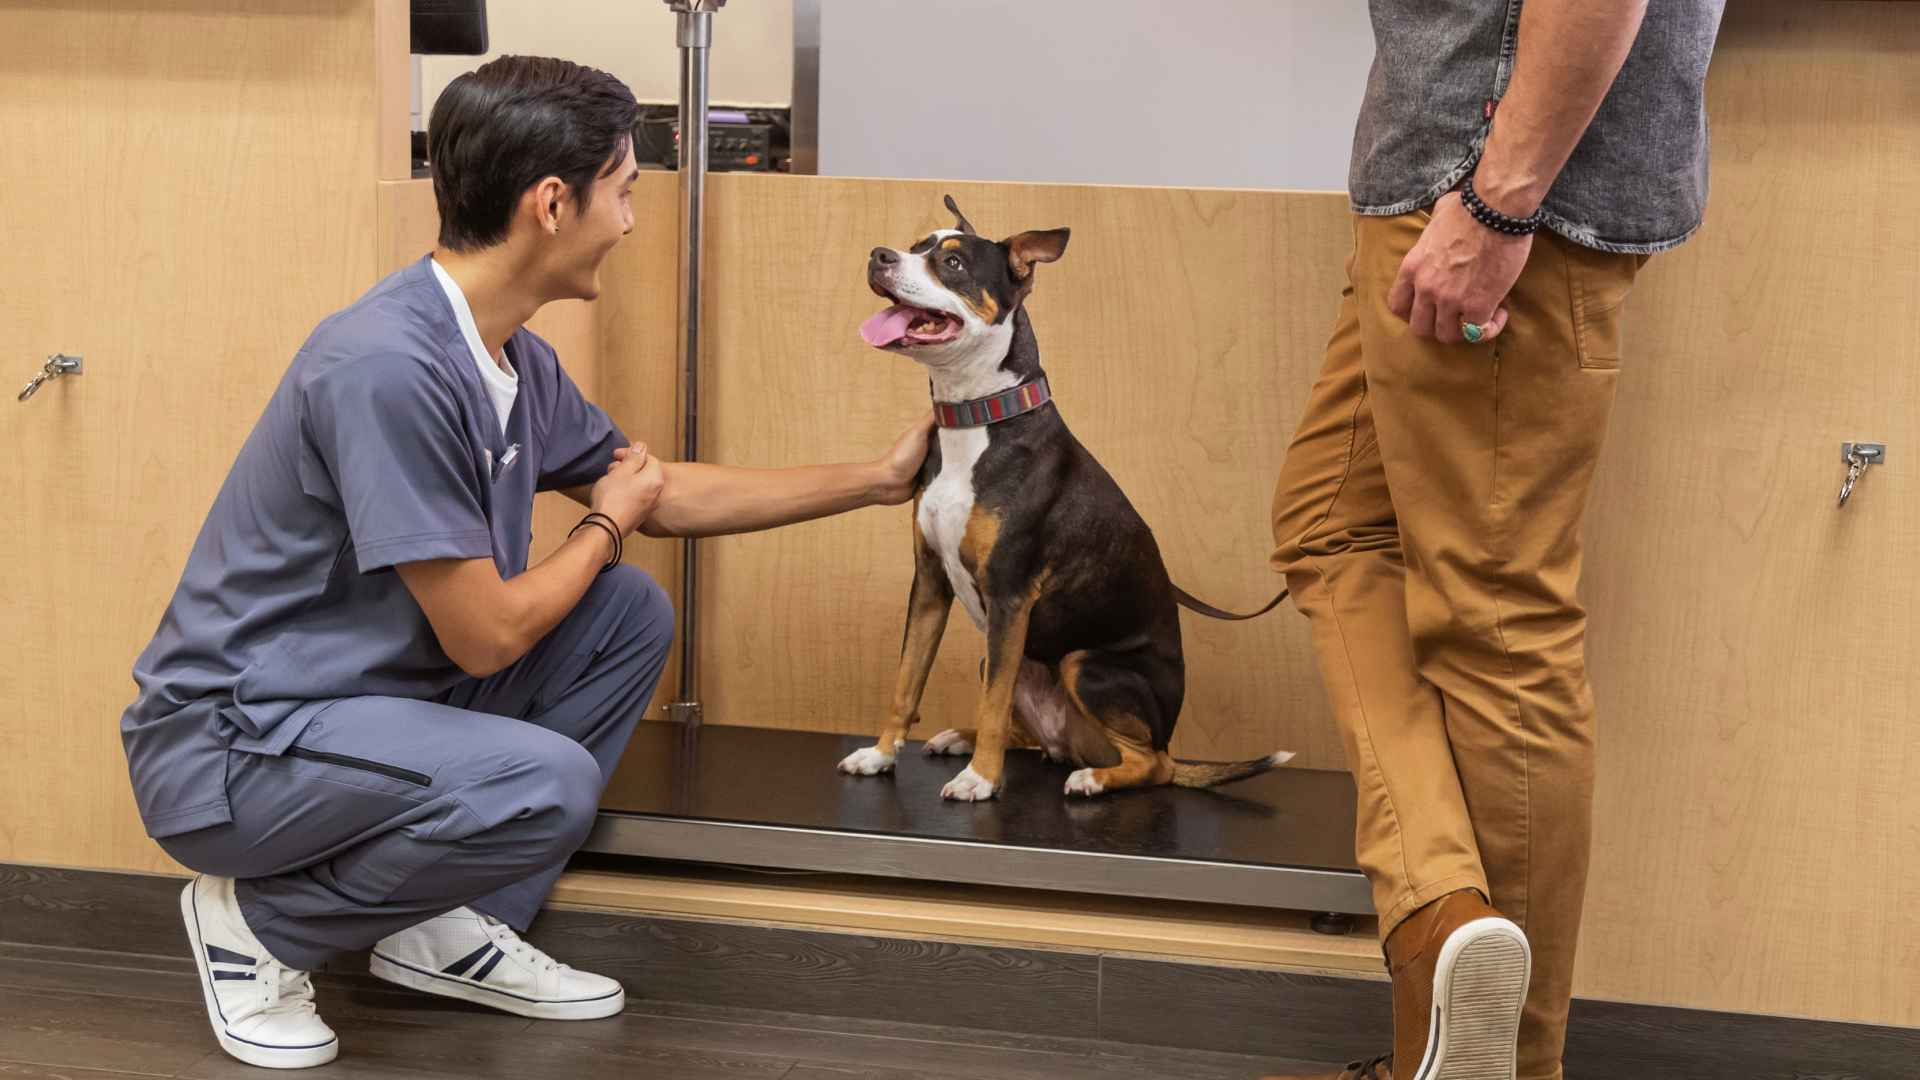 A young male veterinarian squatting and petting a dog while the owner of the dog stands next to him at the Banfield Pet Hospital